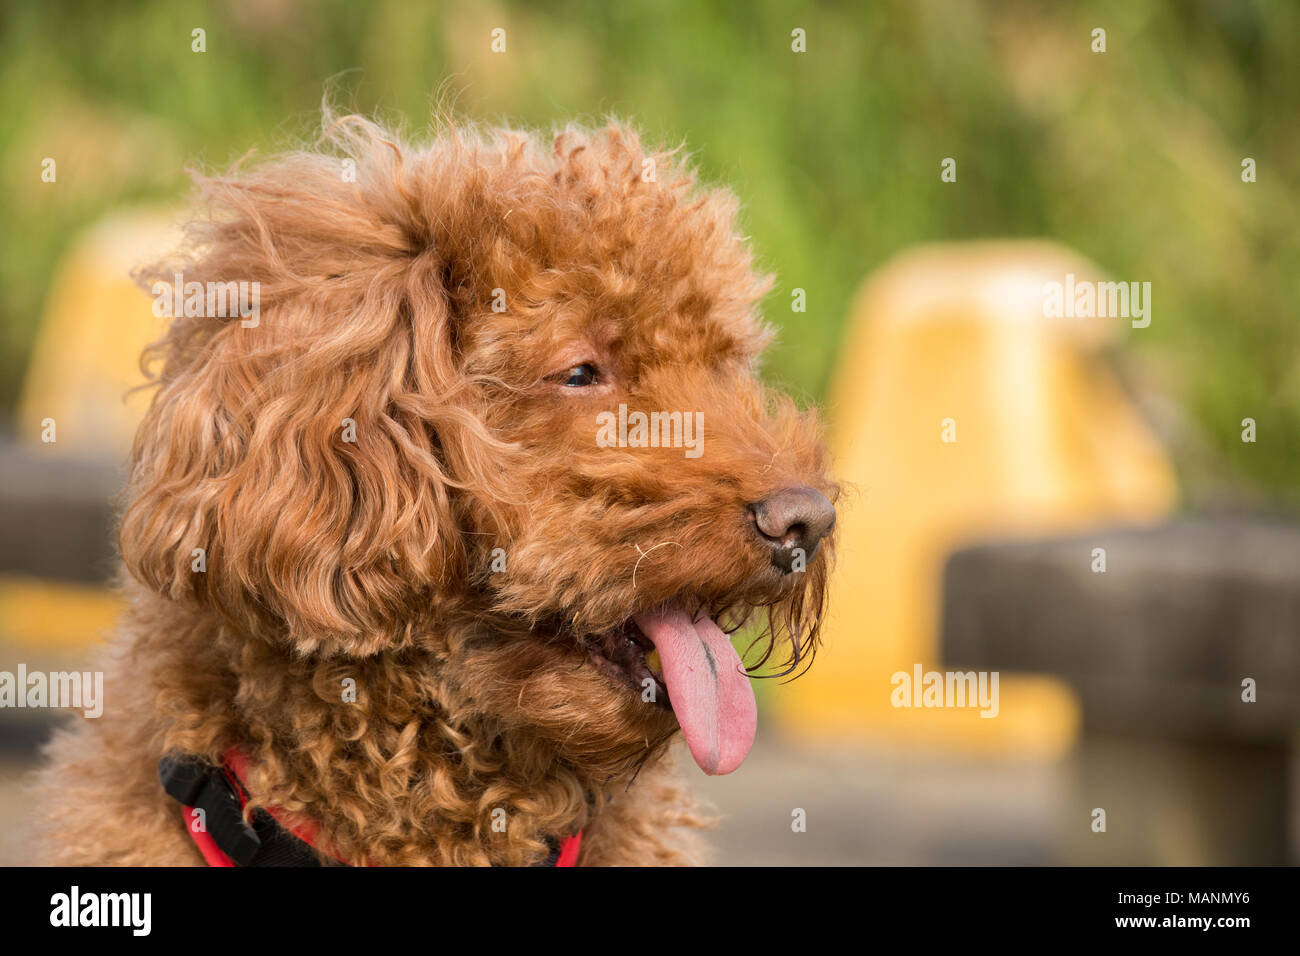 Portrait of chocolate-poodle with tongue hanging out, background out of focus - Stock Image